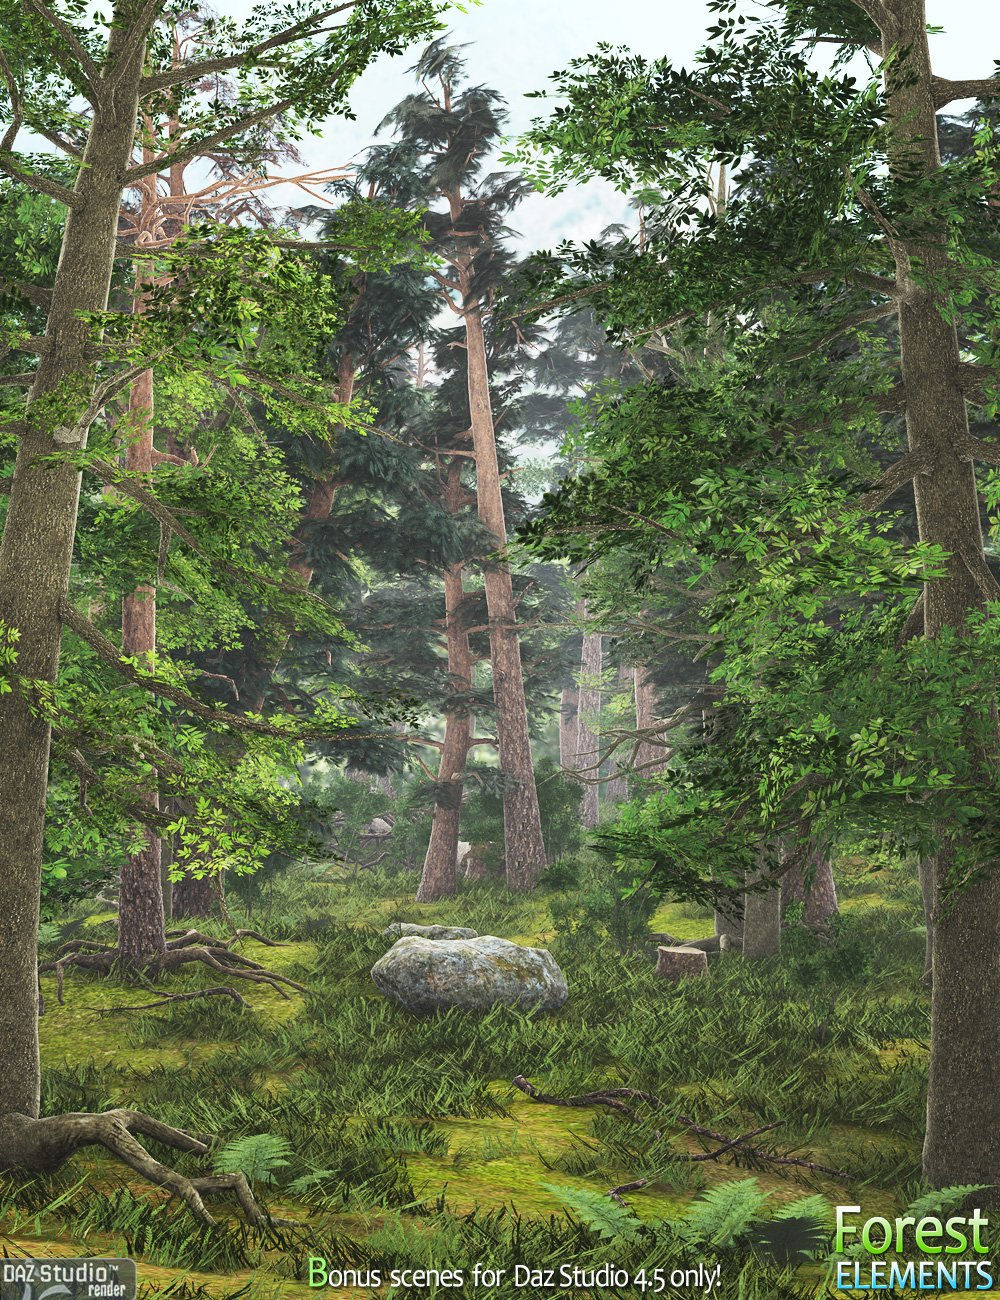 Forest Elements by: Andrey Pestryakov, 3D Models by Daz 3D